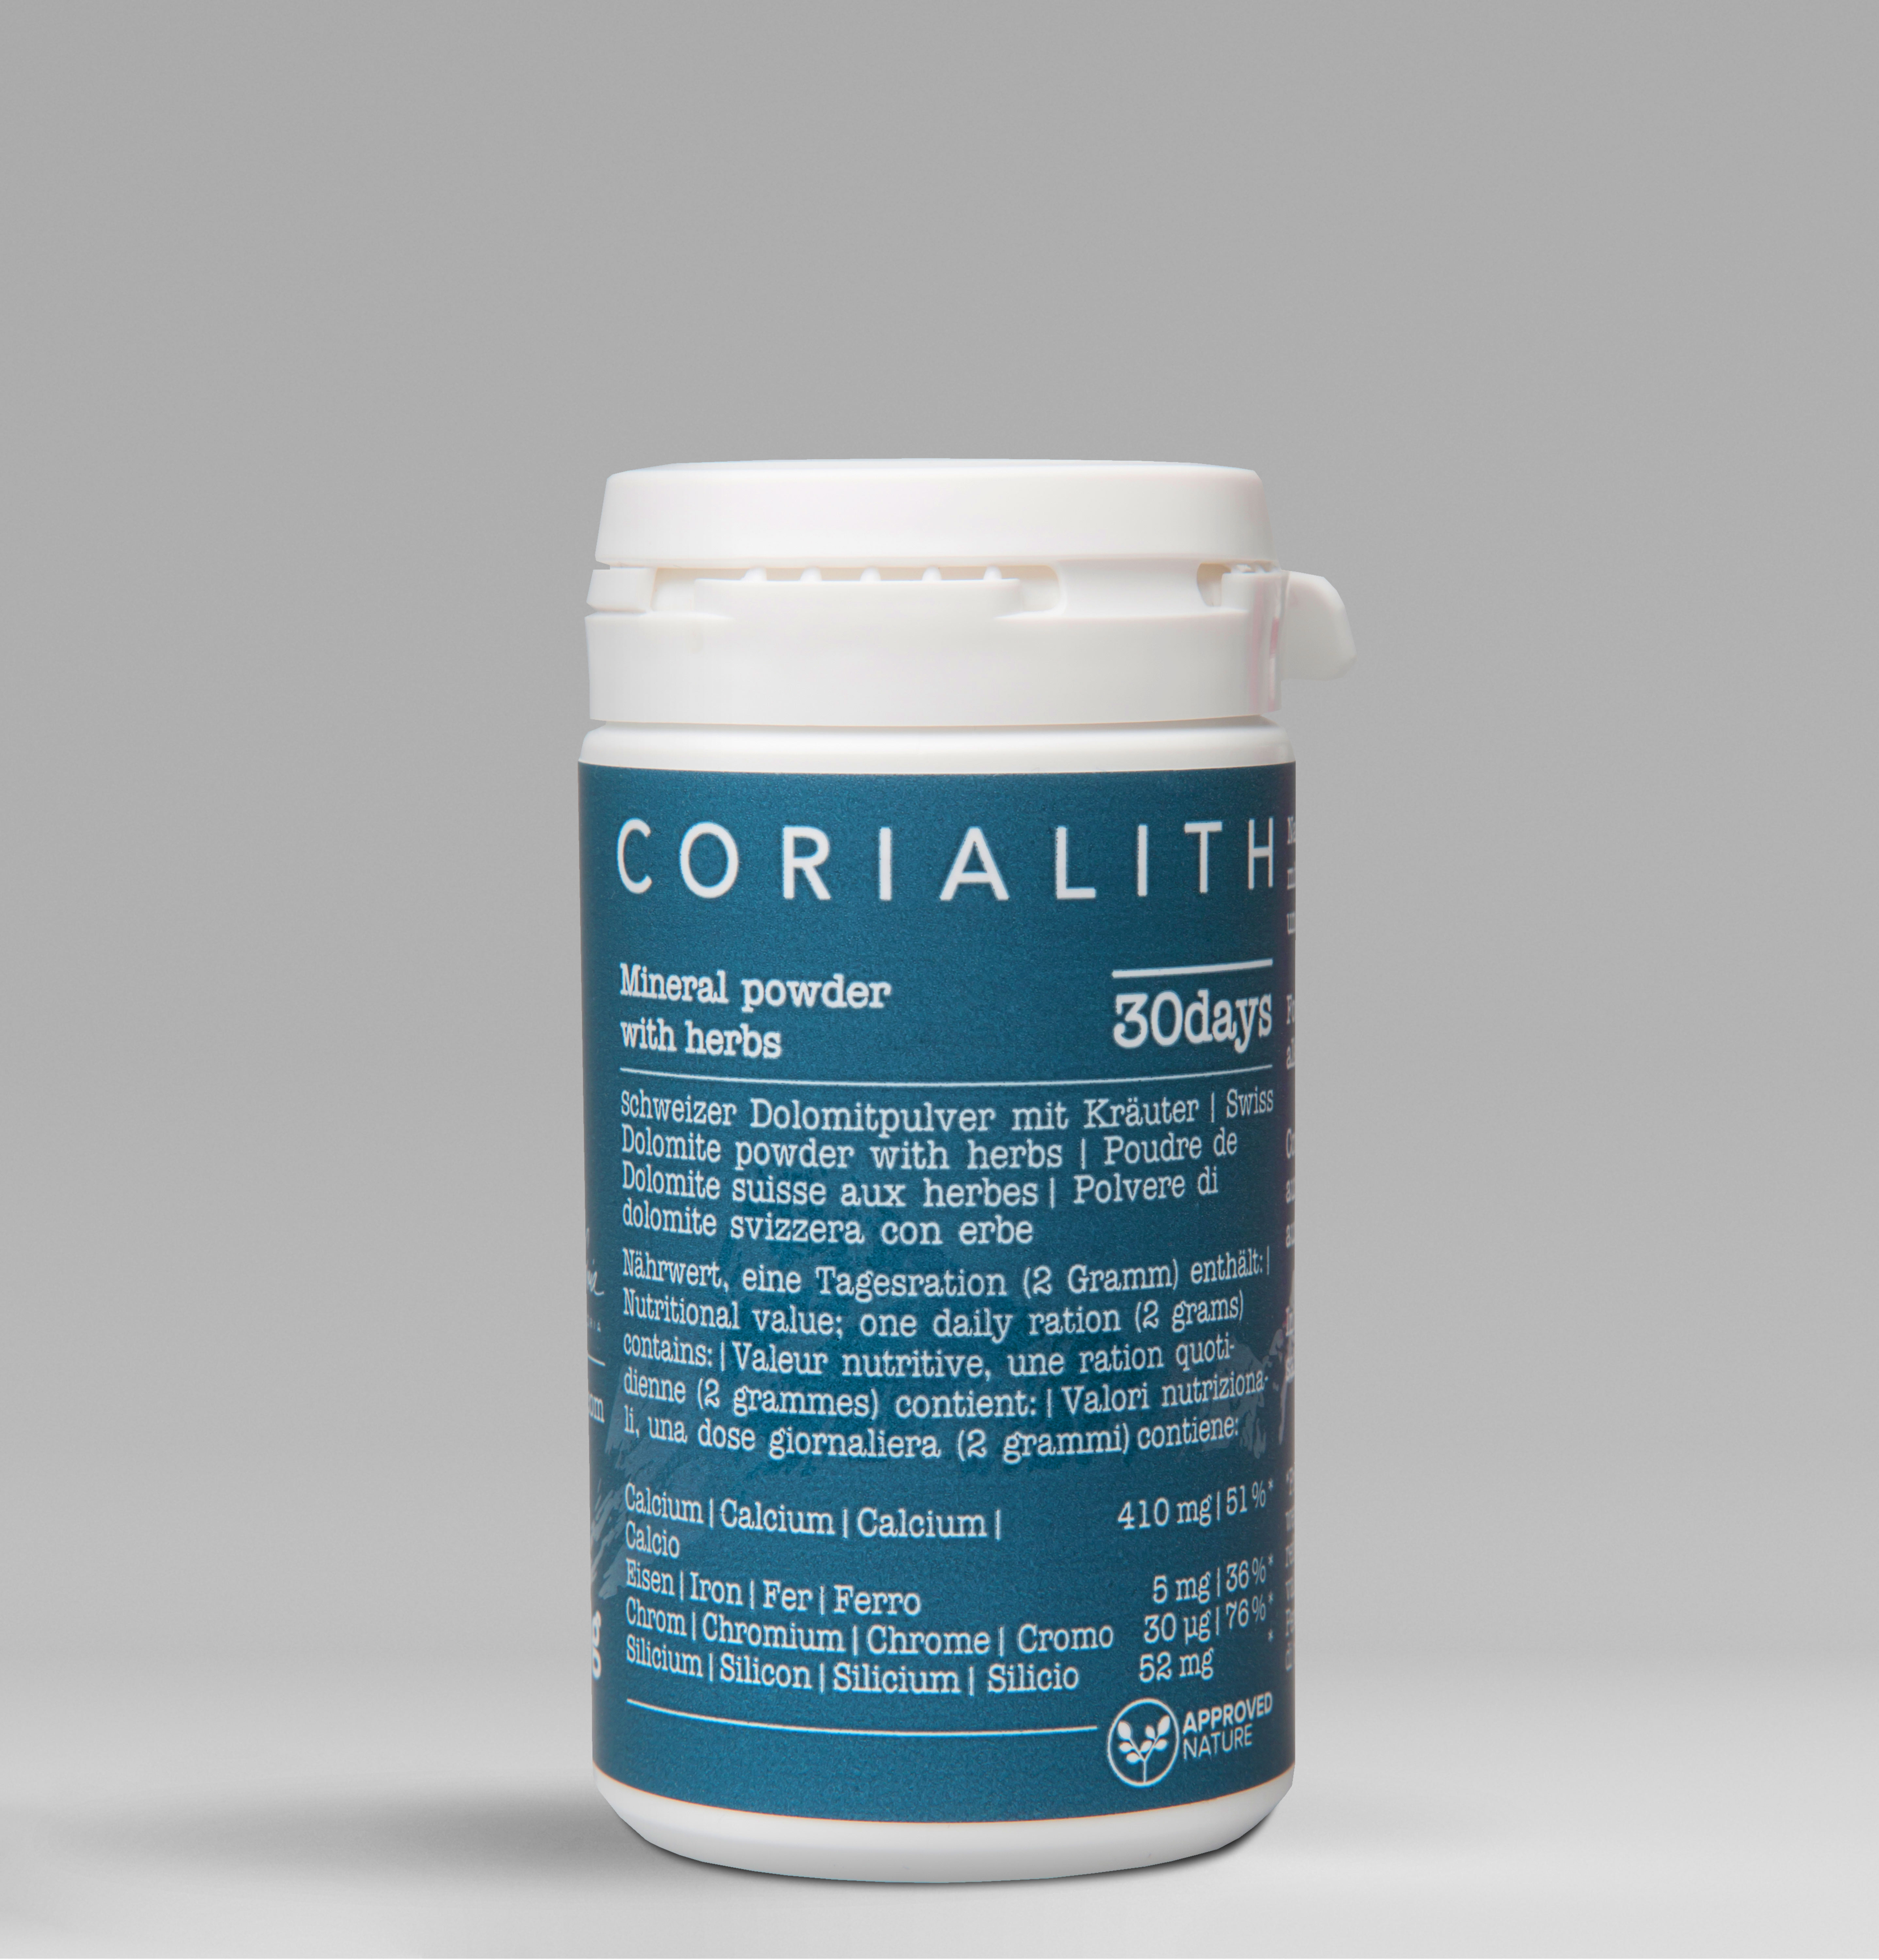 CORIALITH Drink 30days 70g